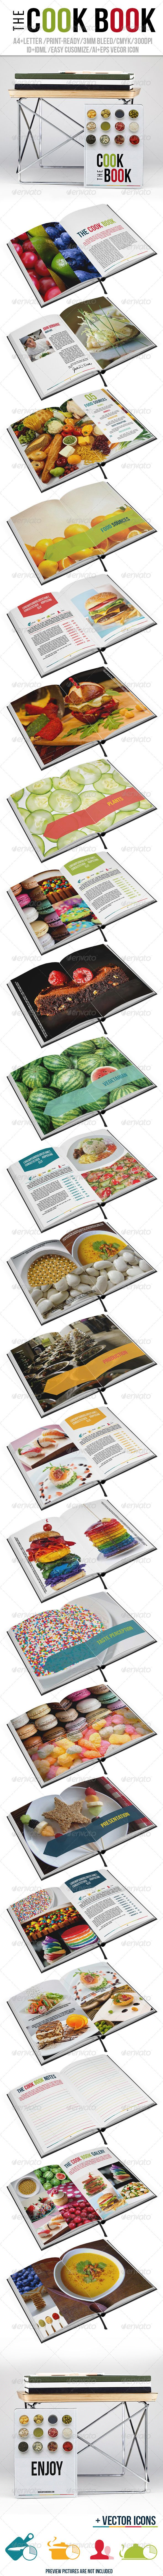 The Cook Book - Brochures Print Templates